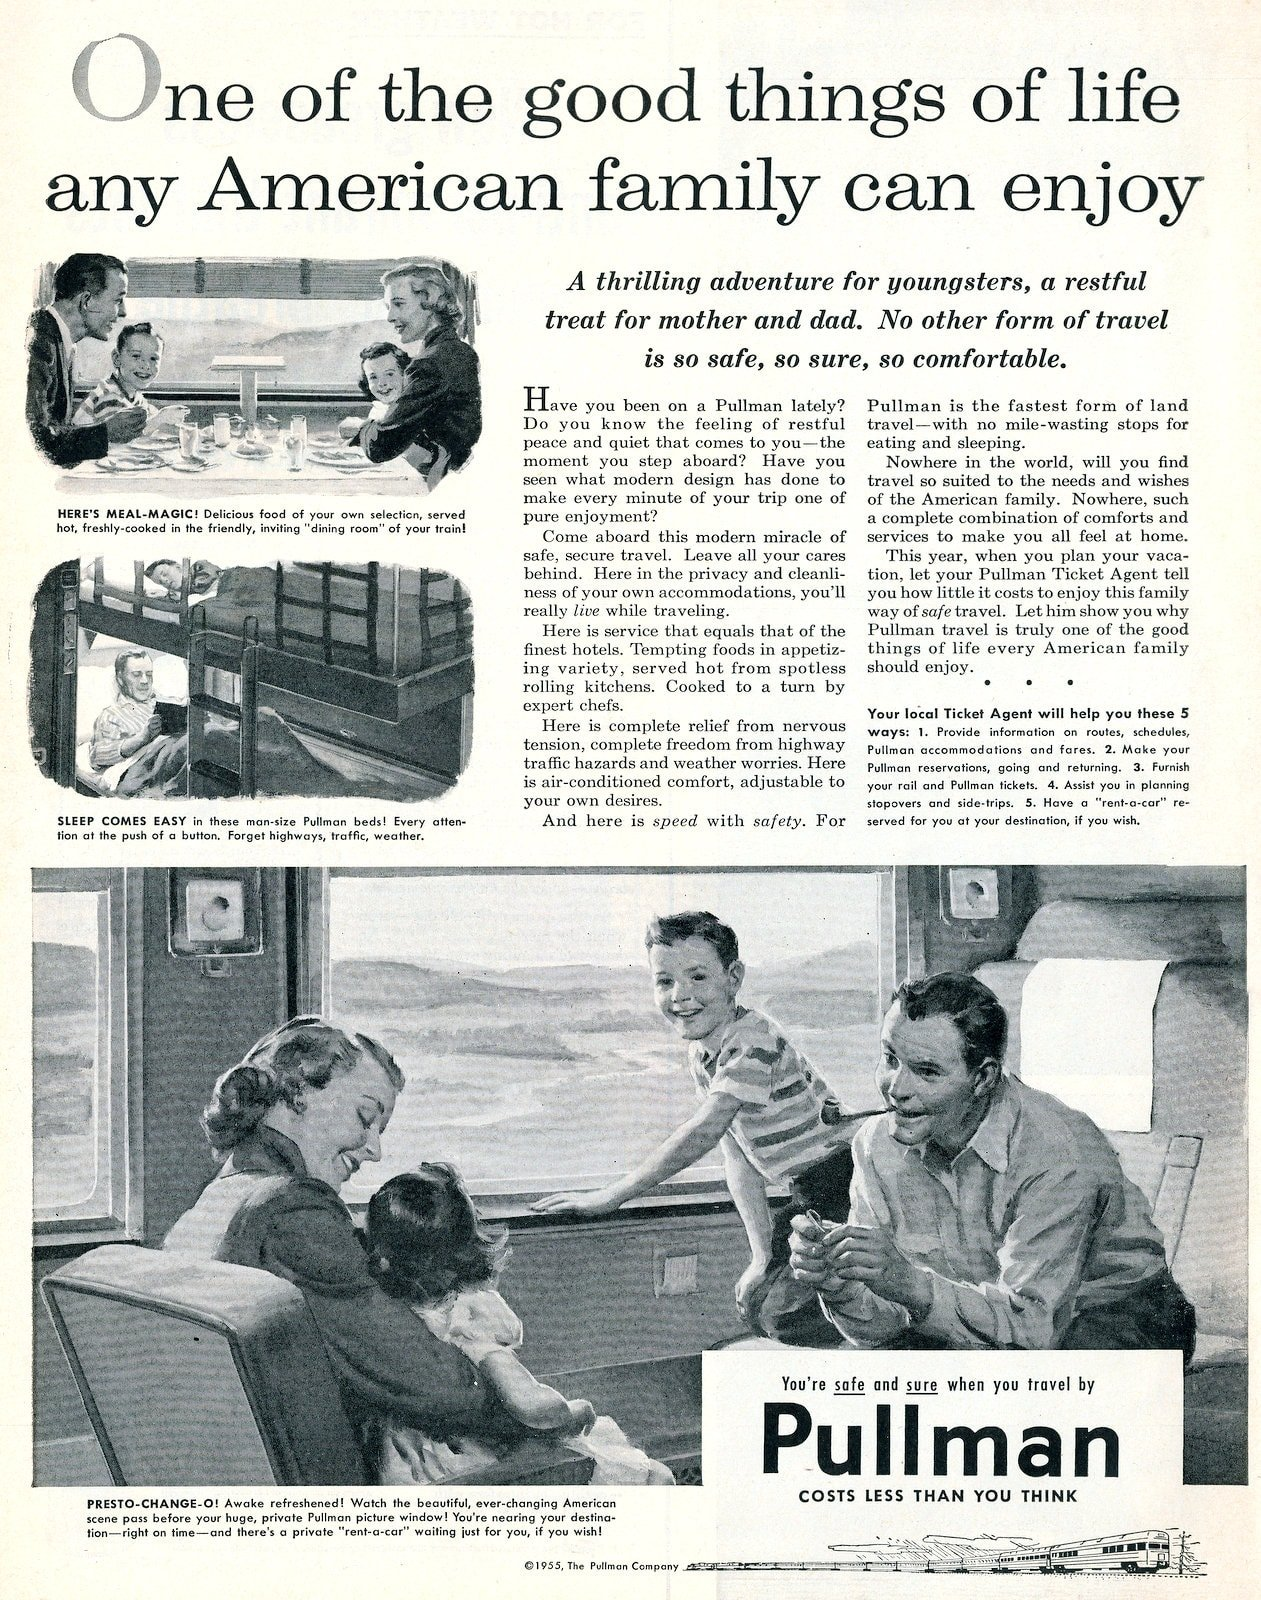 Vintage Pullman trains for family travel (1955)